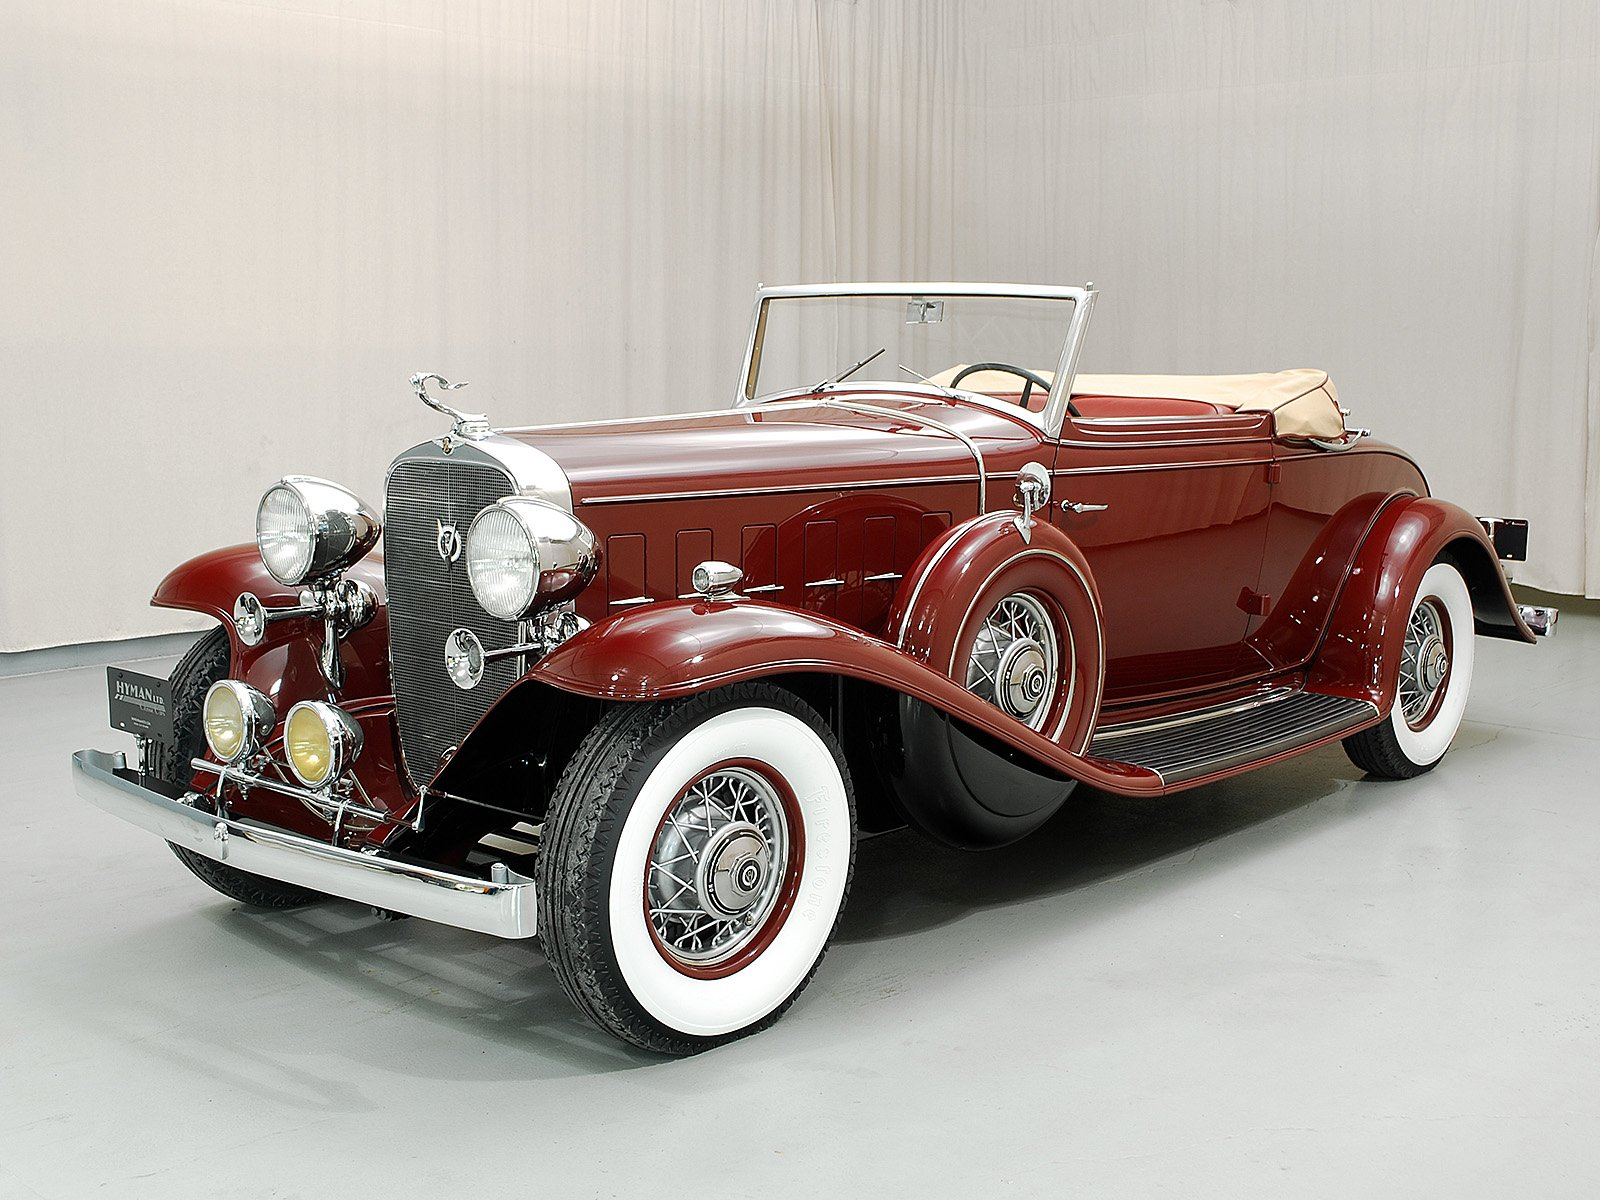 Image Result For Lasalle Cadillac Club